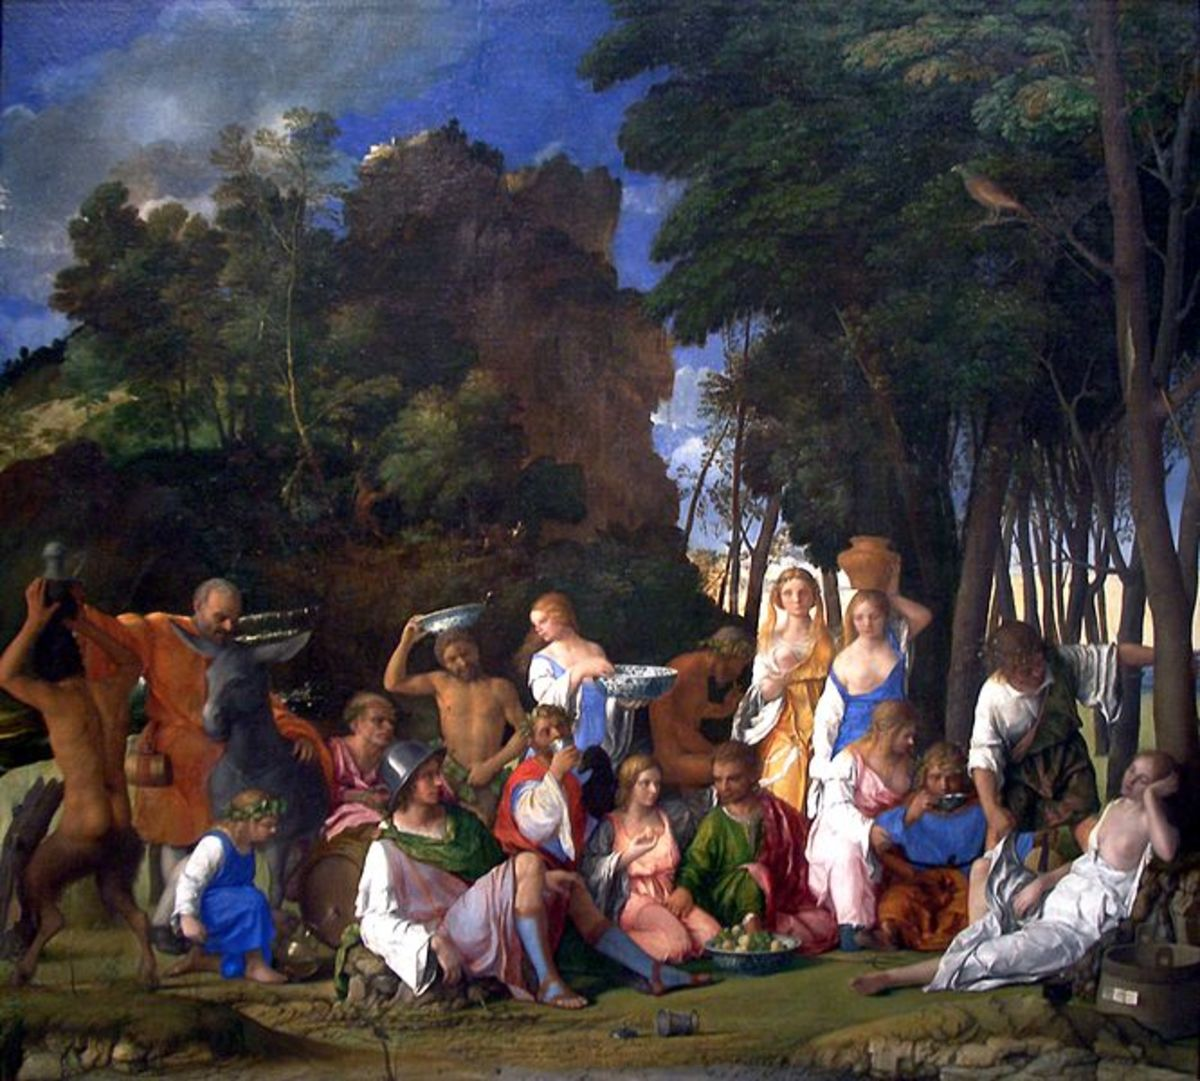 Giovanni Bellini, The Feast of the Gods (1514), Washington National Gallery